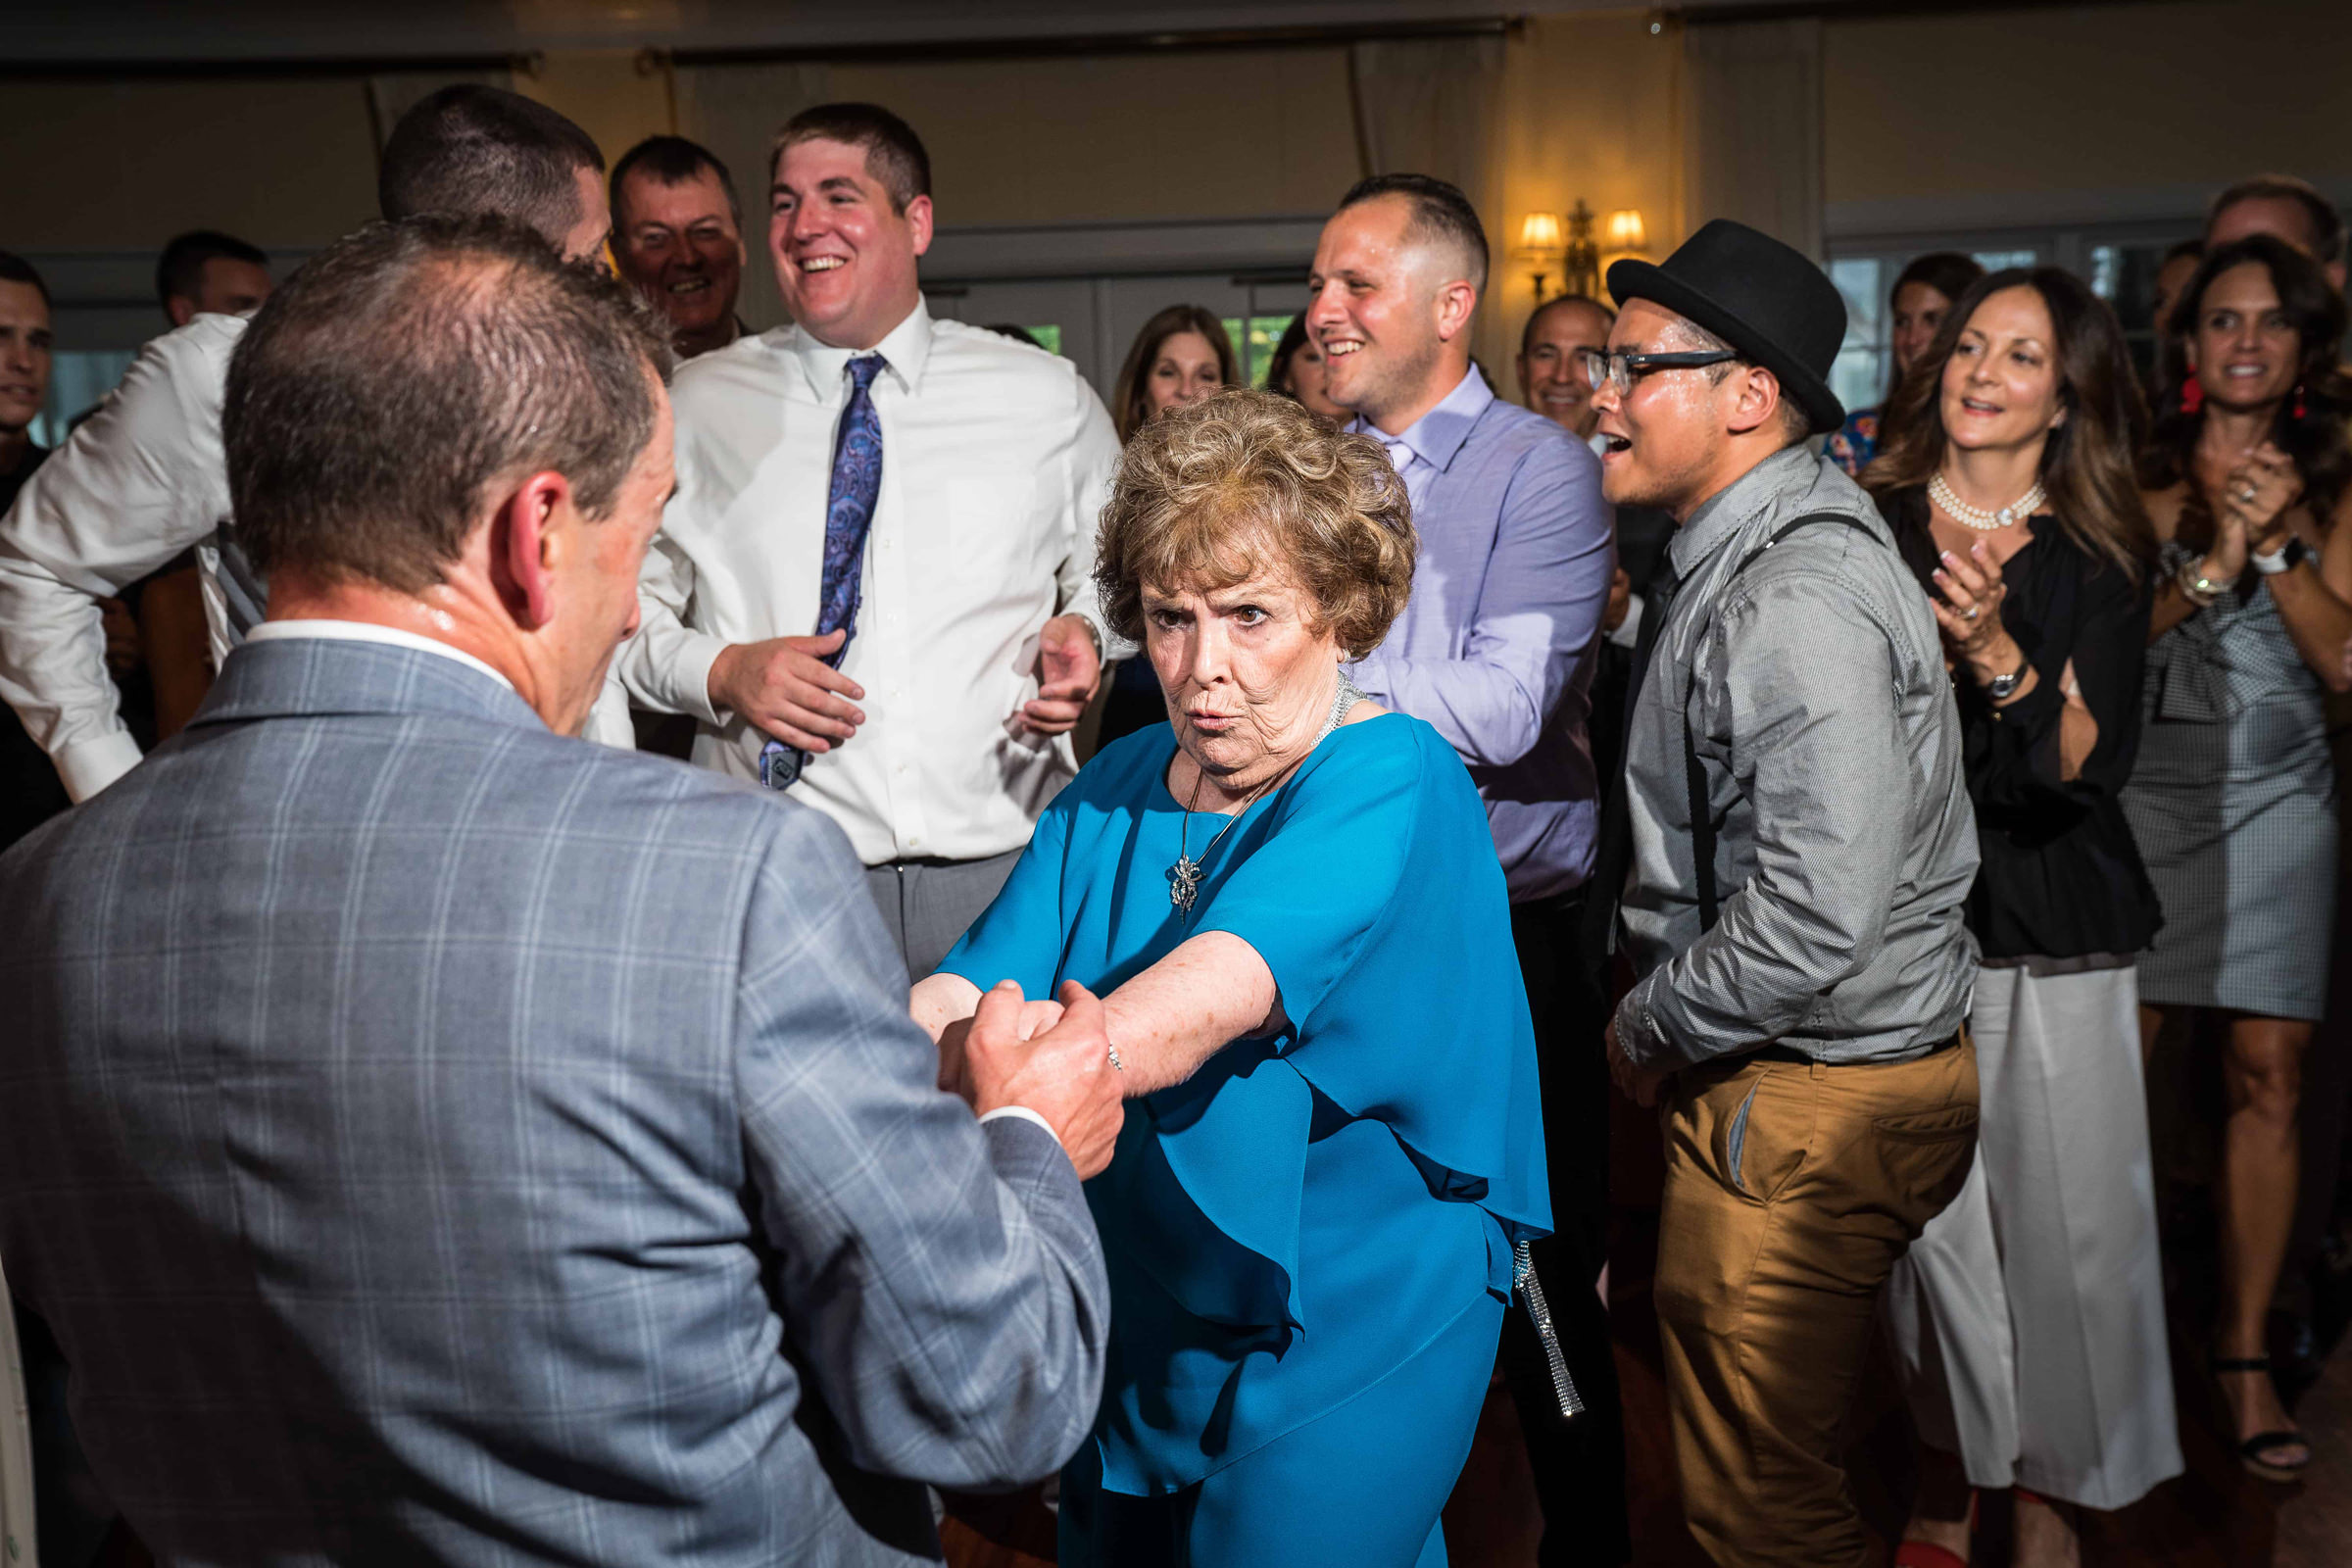 guest-makes-funny-face-while-dancing-photo-by-fuller-photography-pennsylvania